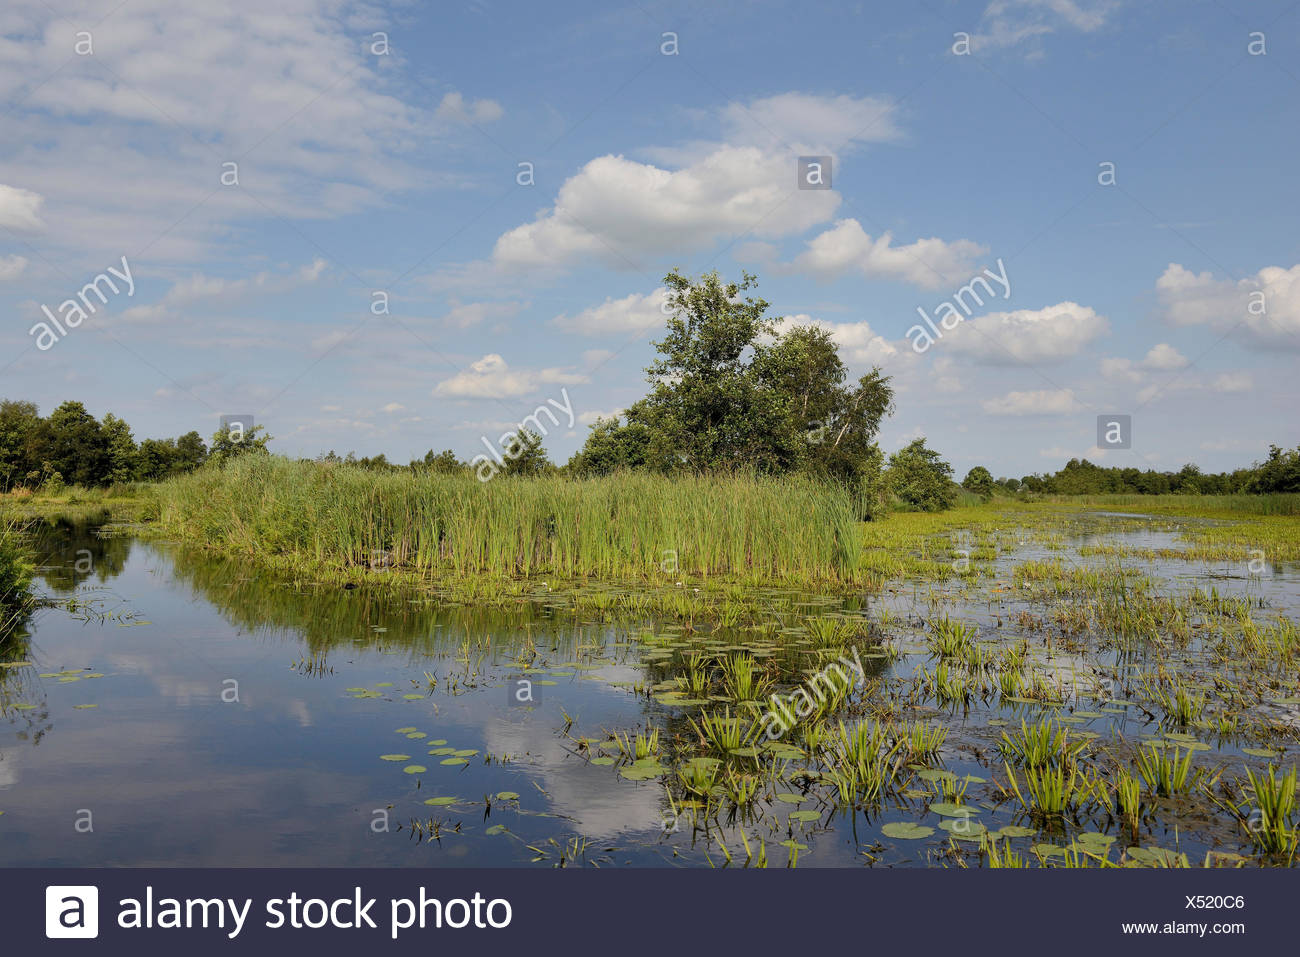 A landscape with open water, typical view with Water Soldier (Stratiotes aloides) of the National Parc Weerribben-Wieden, The Netherlands, Overijssel, National Parc Weerribben-Wieden - Stock Image